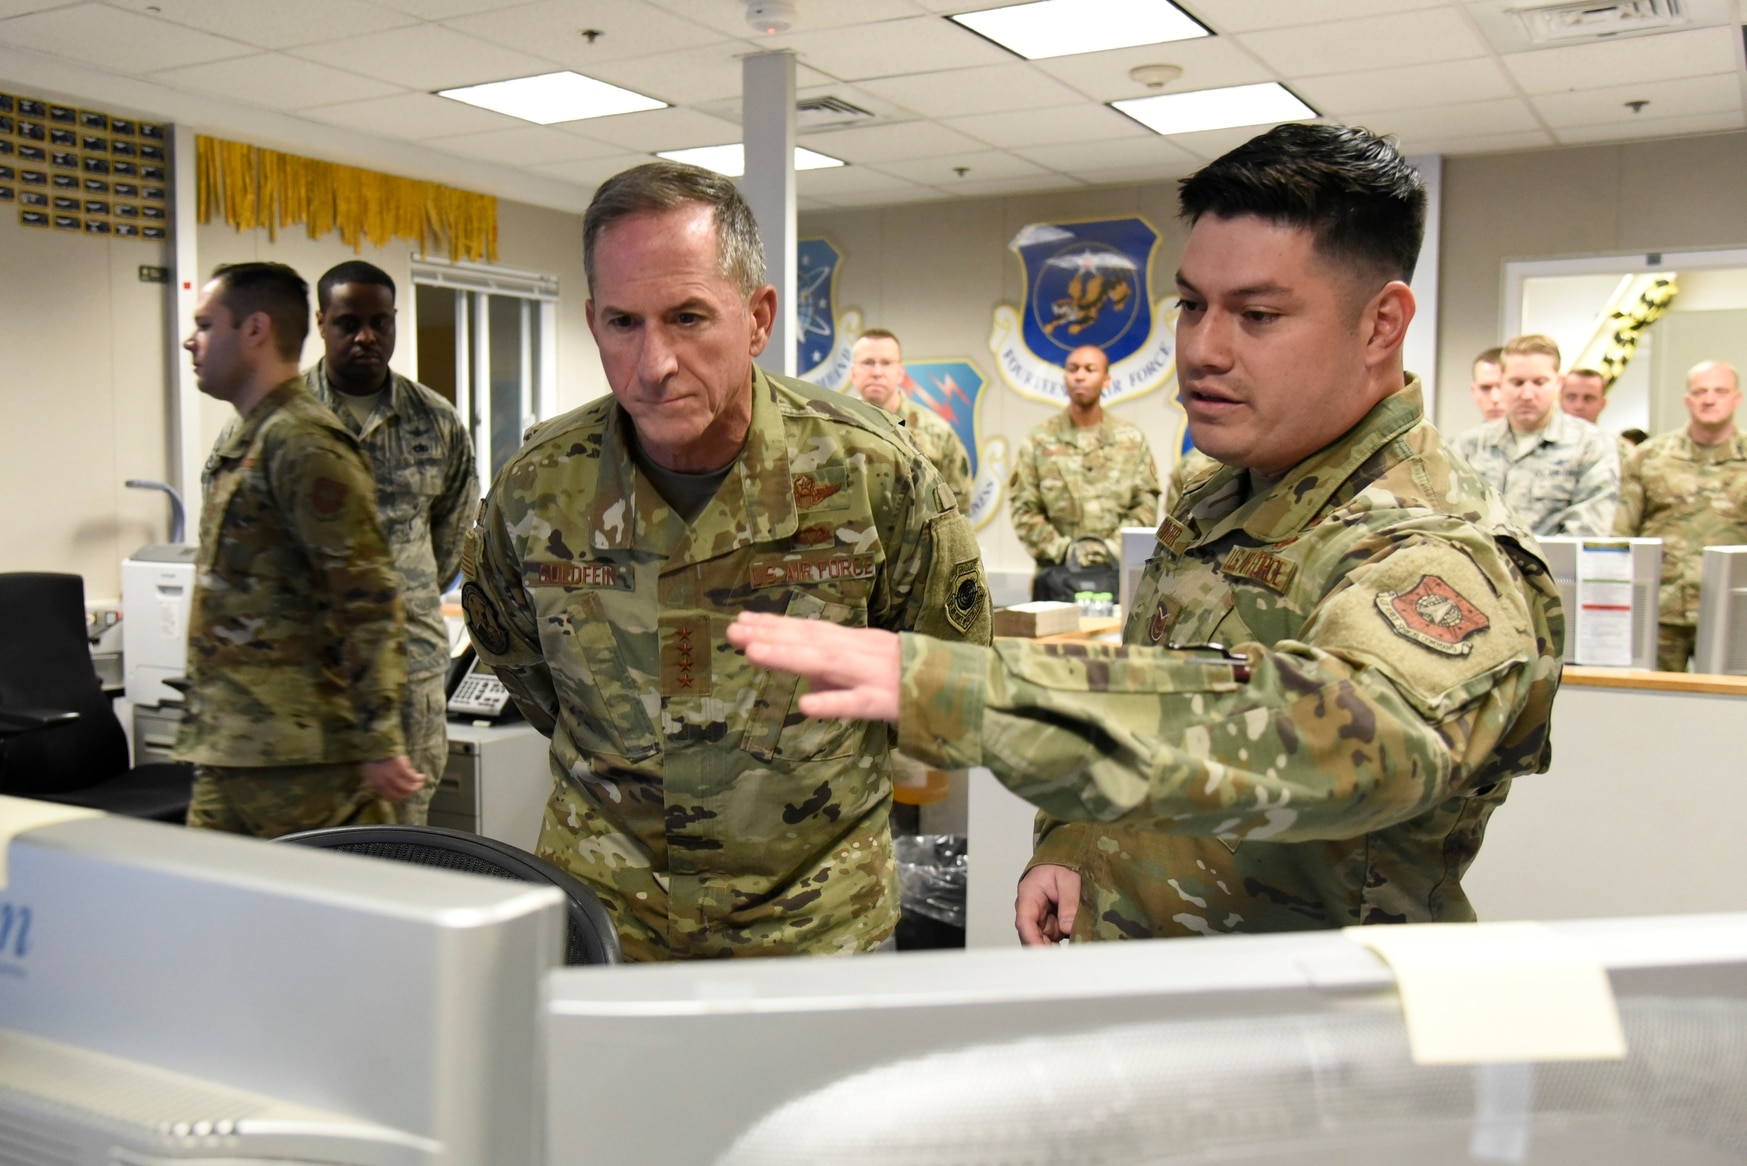 U.S. Air Force Chief of Staff Gen. Dave Goldfein is briefed by an airman from the 12th Space Warning Squadron at Thule Air Base, Greenland, on July 20, 2019. Defense News accompanied Goldfein on his first visit to the base. (Staff Sgt. Alexandra M. Longfellow/U.S. Air Force)